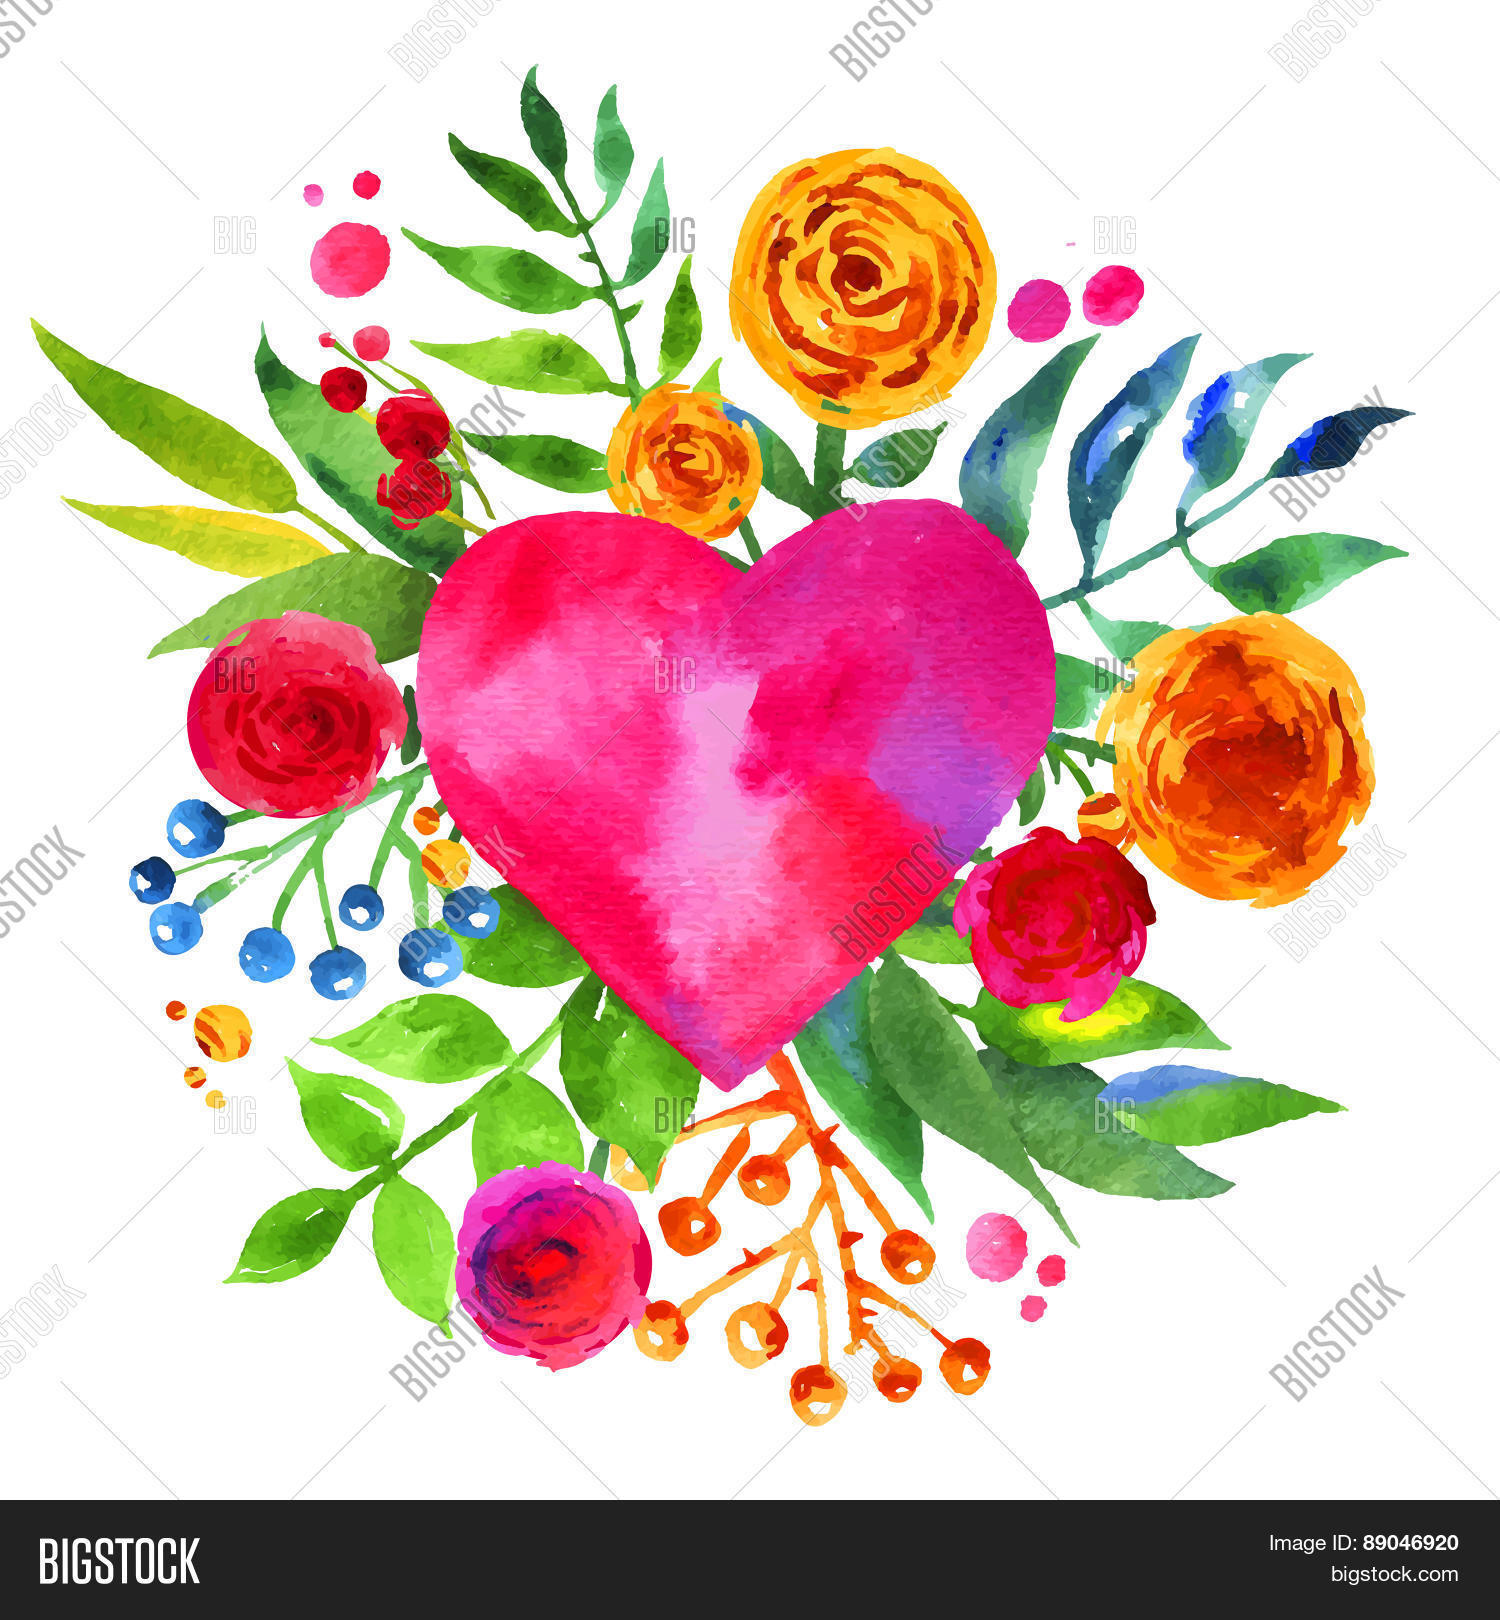 Vintage background vector photo free trial bigstock vintage background with flowers in love and flower heart beautiful watercolor floral heart love izmirmasajfo